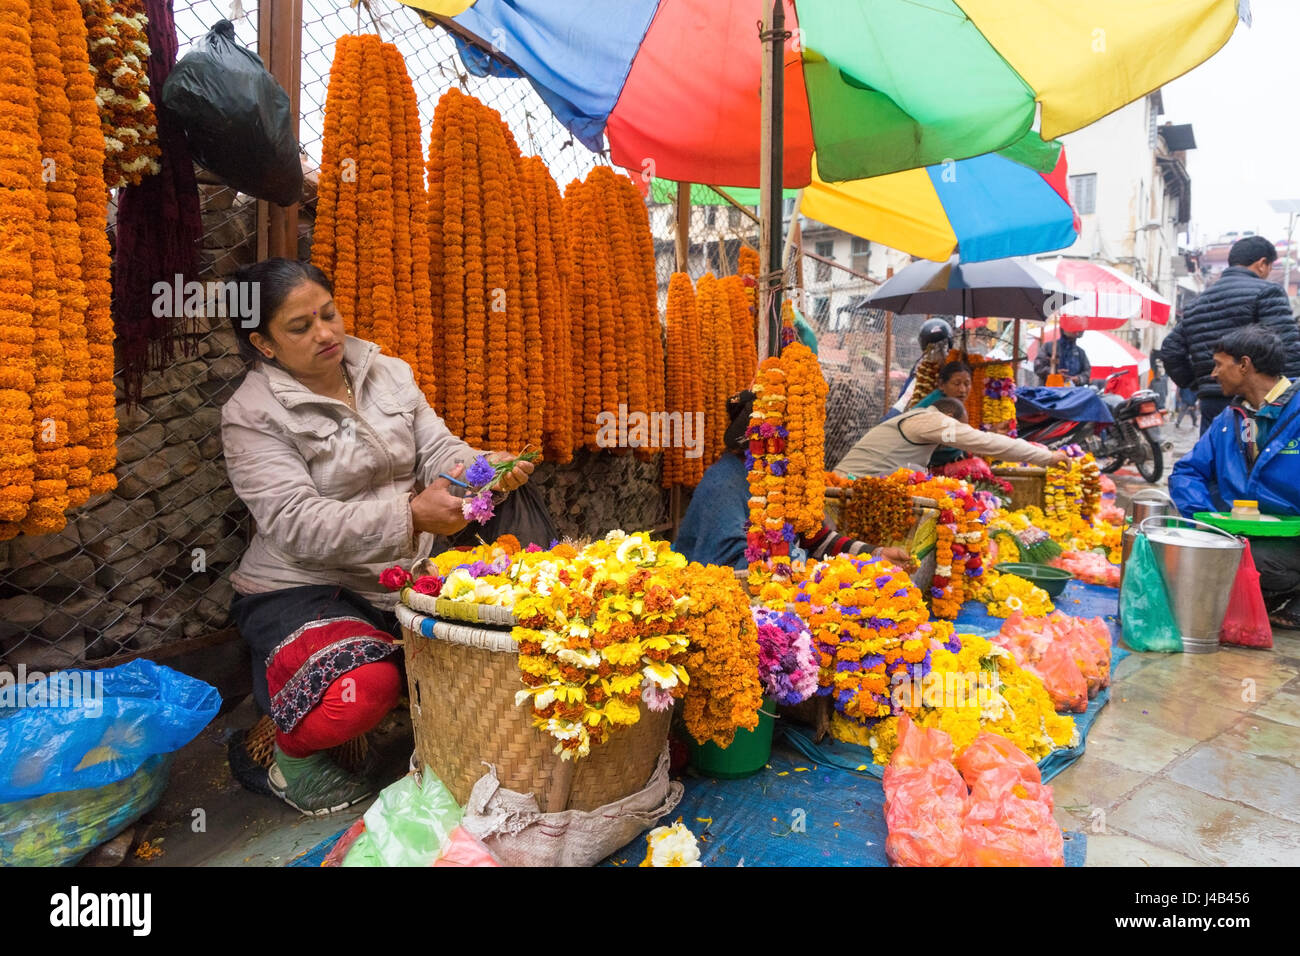 Flower saleswoman preparing a necklace. Kathmandu, Nepal. - Stock Image